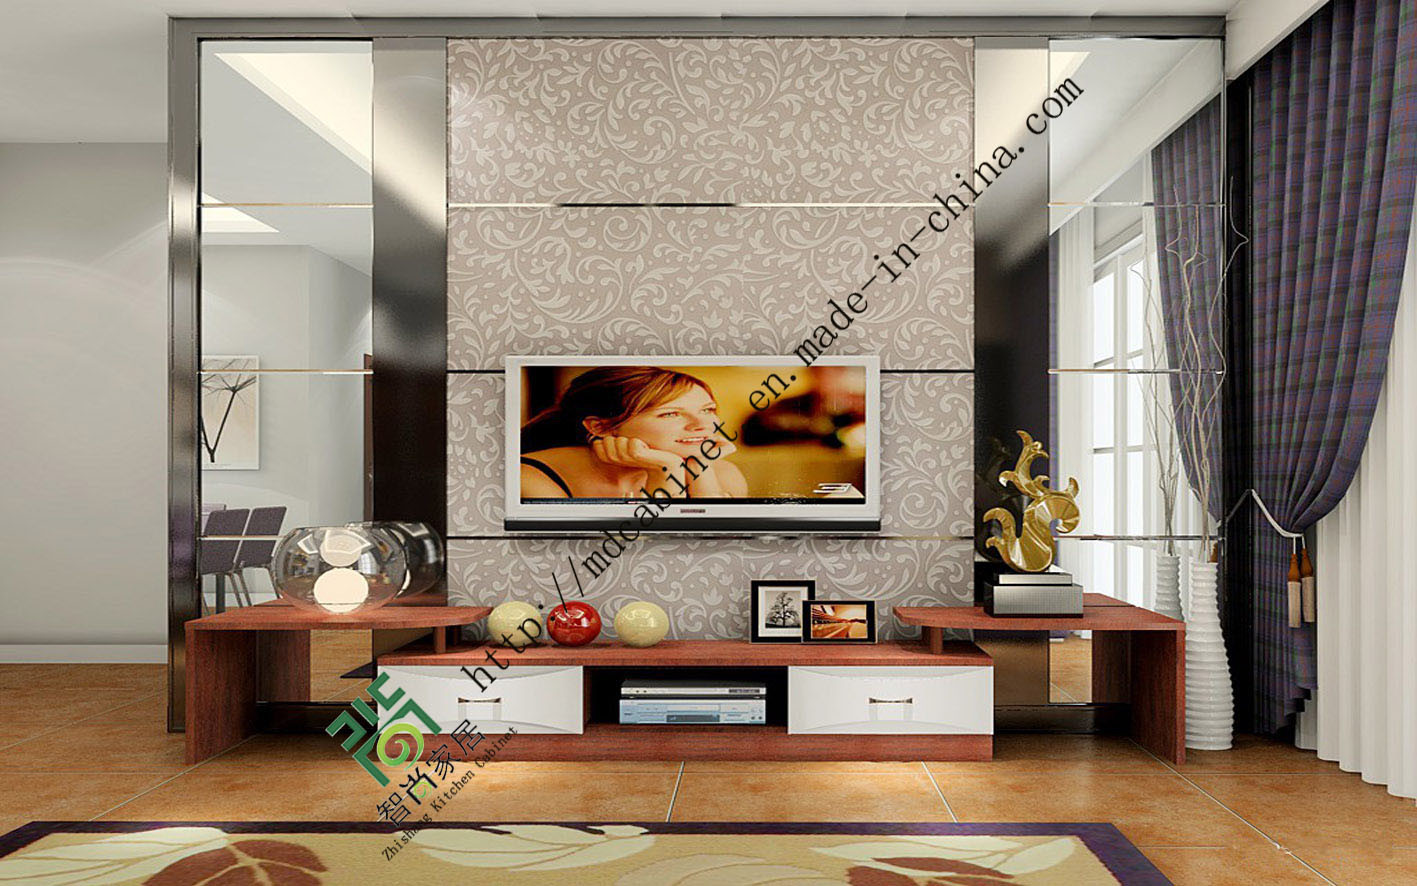 china 2015 new style tv cabinet from china elegant style 03 photos pictures made in. Black Bedroom Furniture Sets. Home Design Ideas